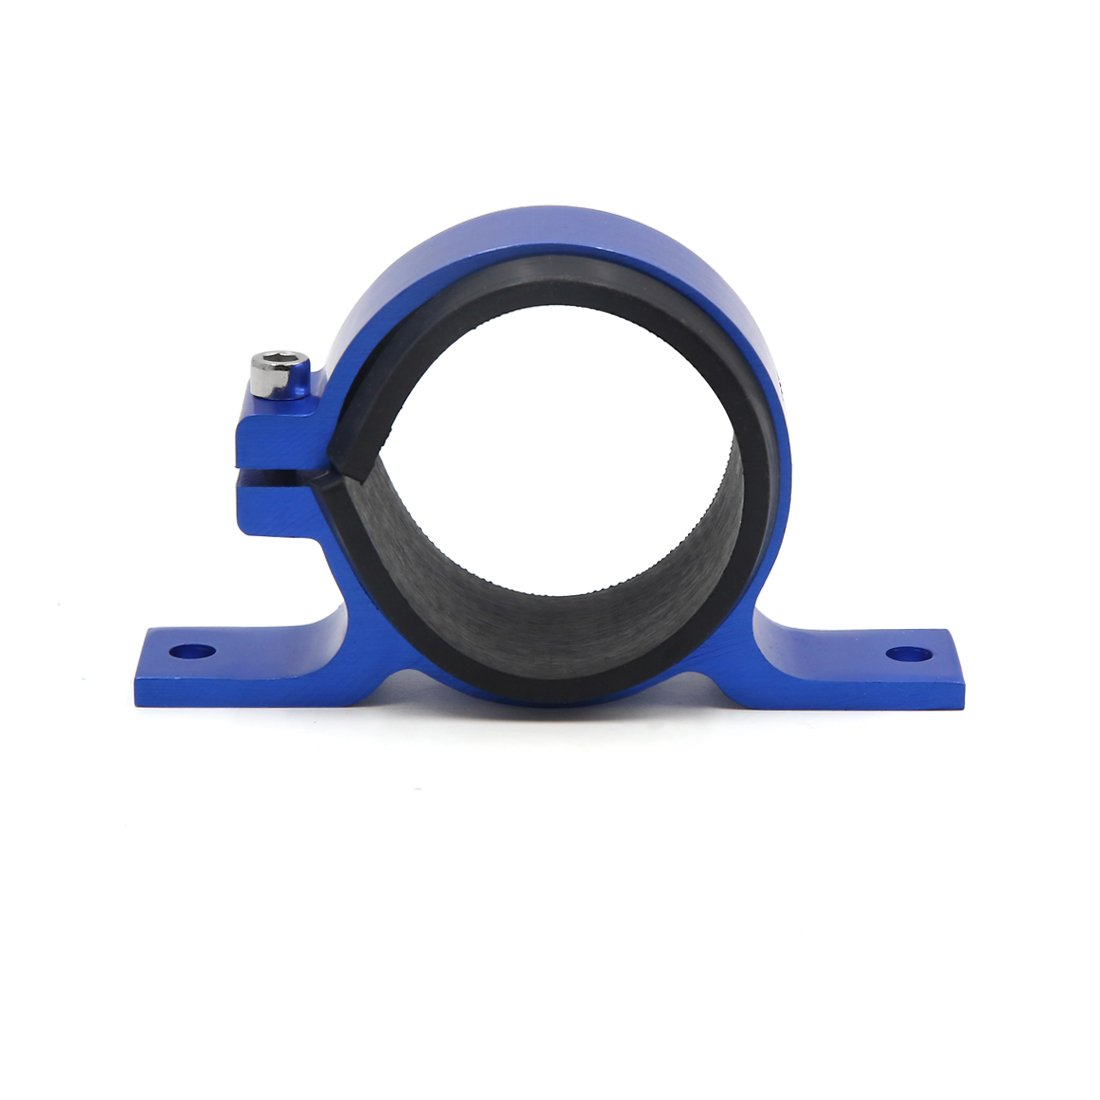 uxcell Blue Aluminum Alloy Fuel Pump Mounting Bracket Clamp Cradle for Car Automobile by uxcell (Image #1)